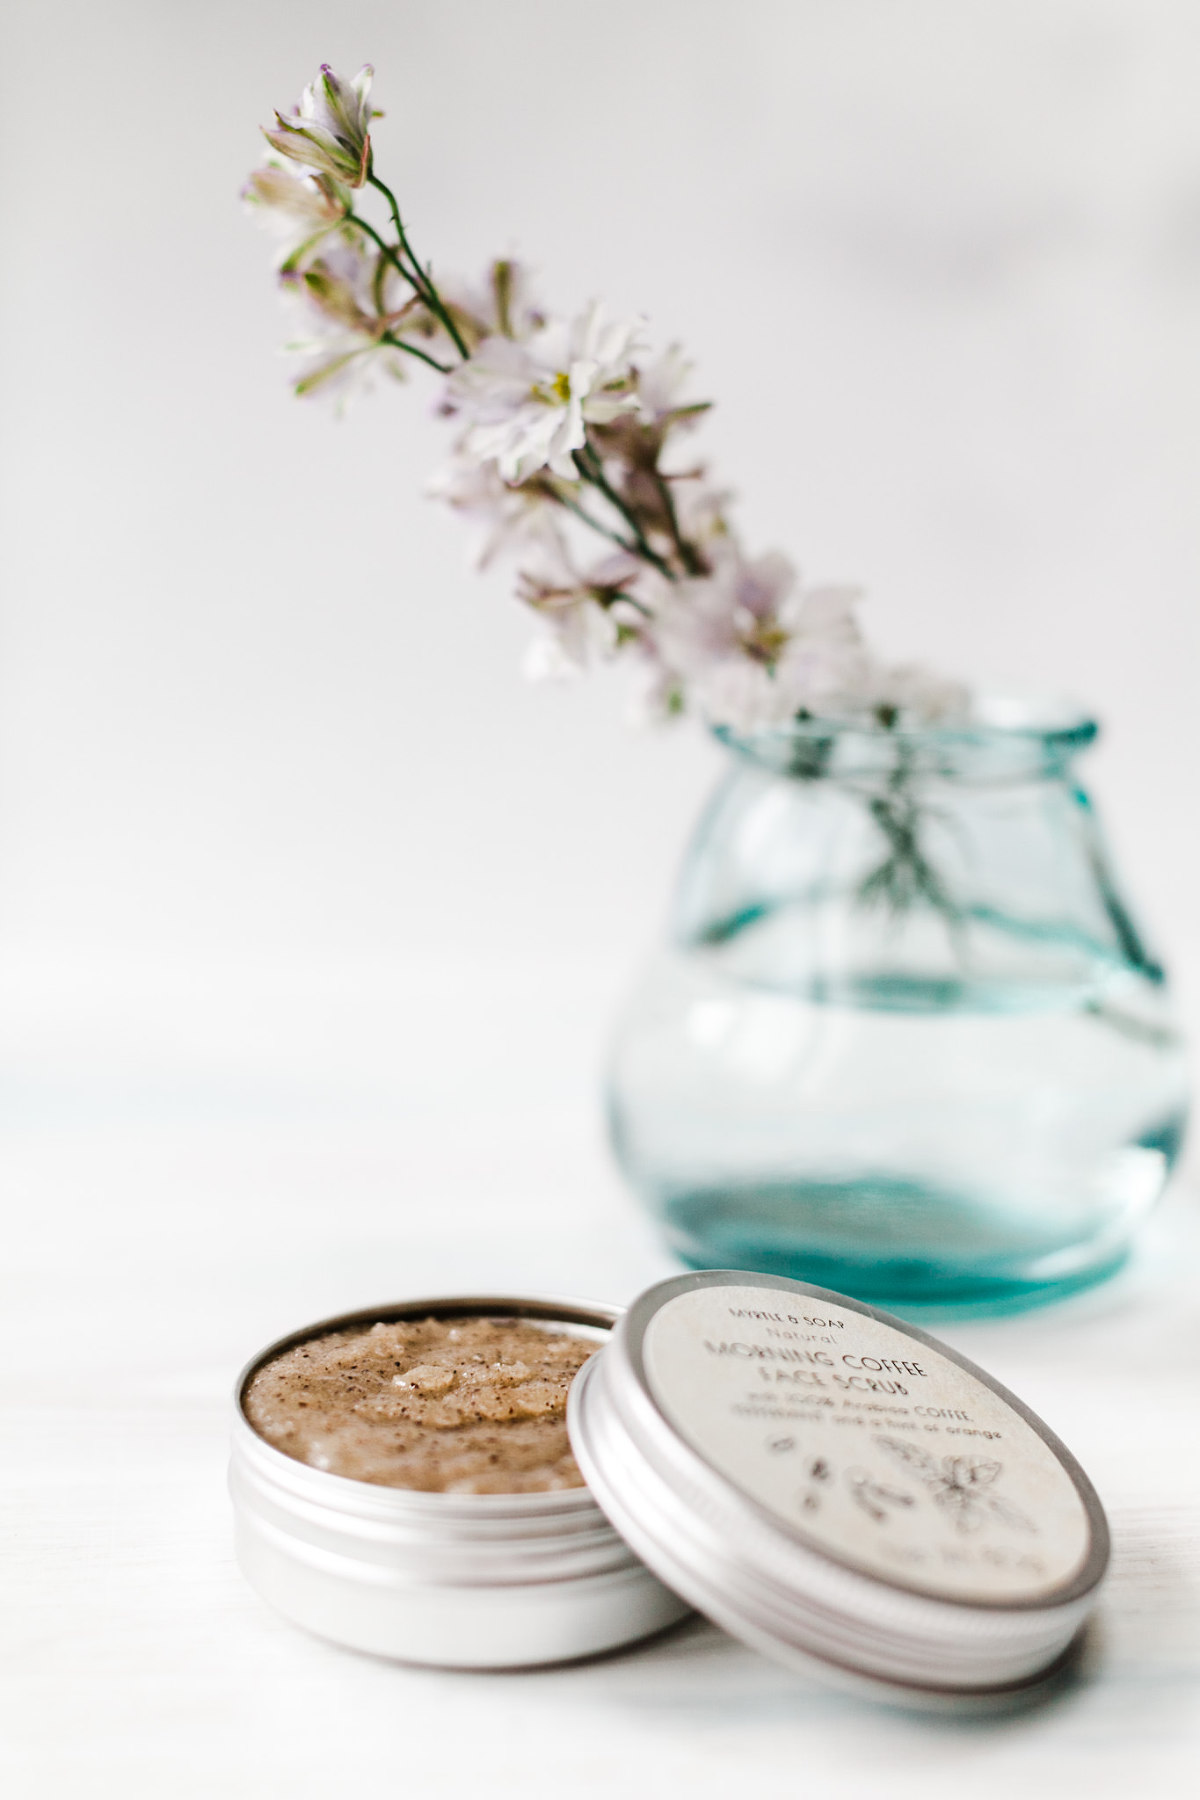 Product photography showing eco friendly skincare and flowers